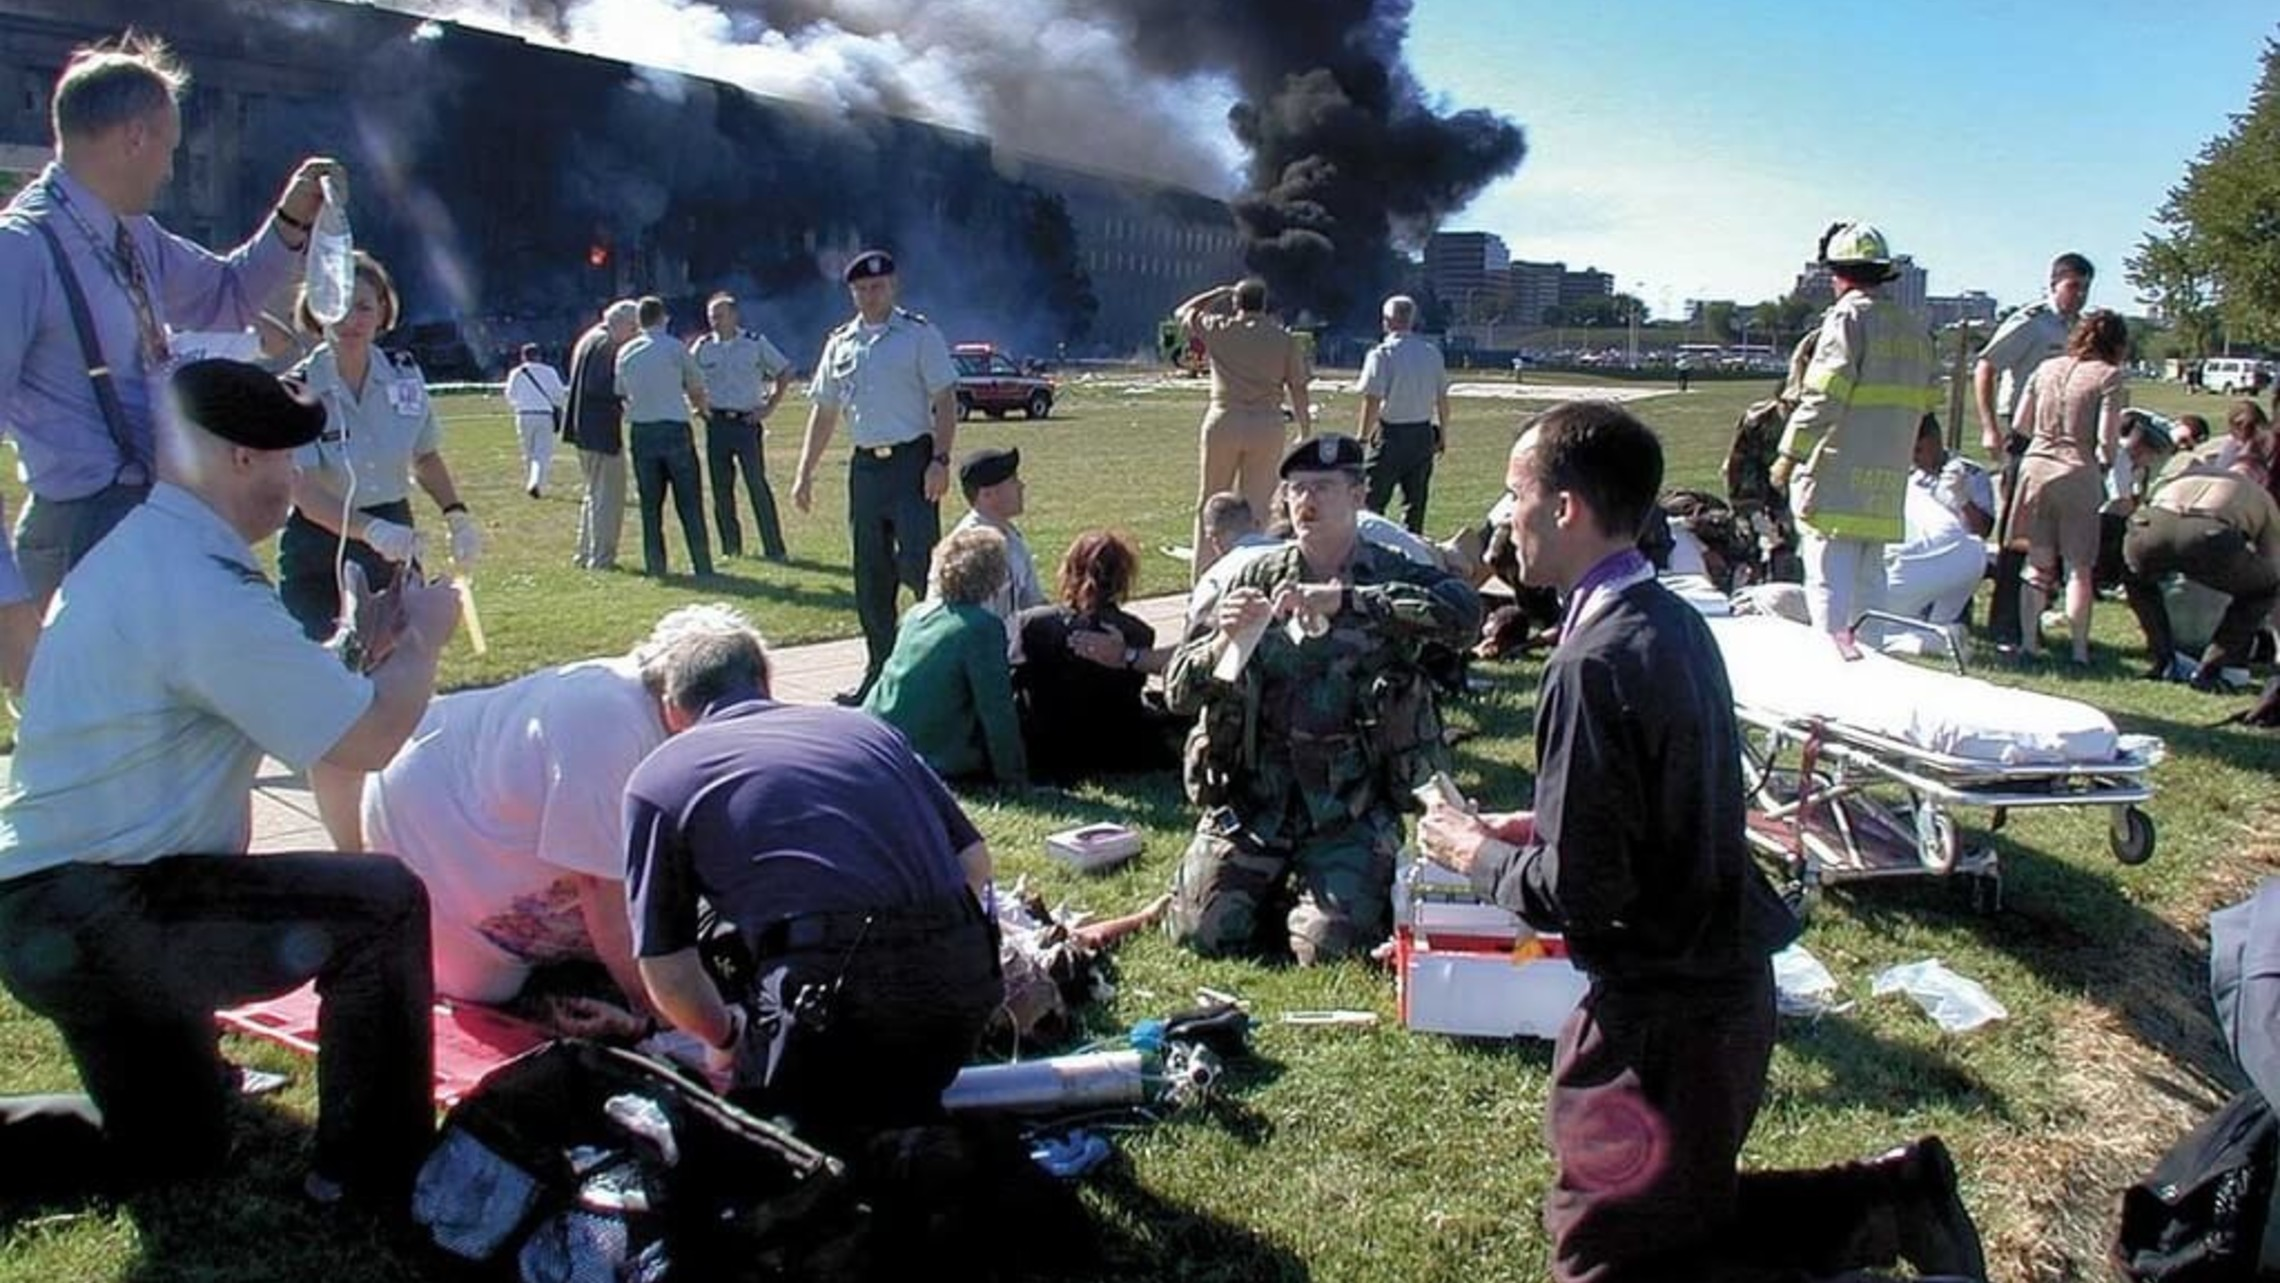 Fr. Steven McGraw prays with victims outsdide the Pentagon on 9/11/2001